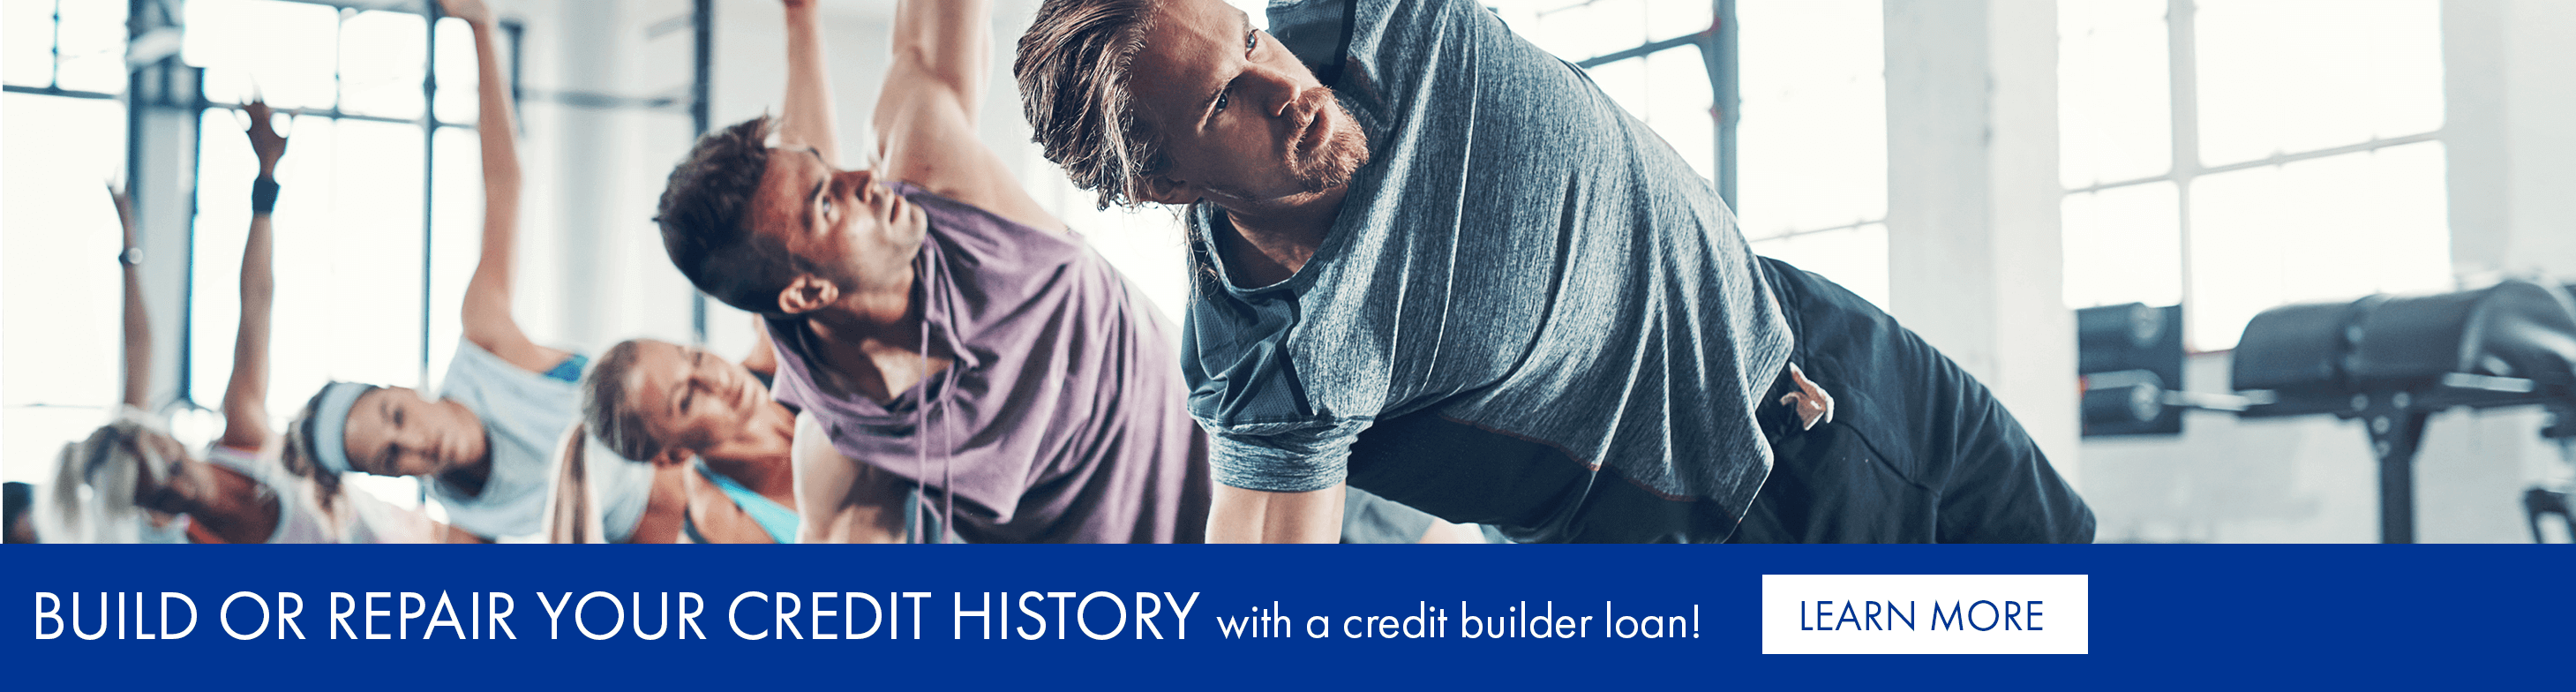 Build or repair your credit history with a credit builder loan!